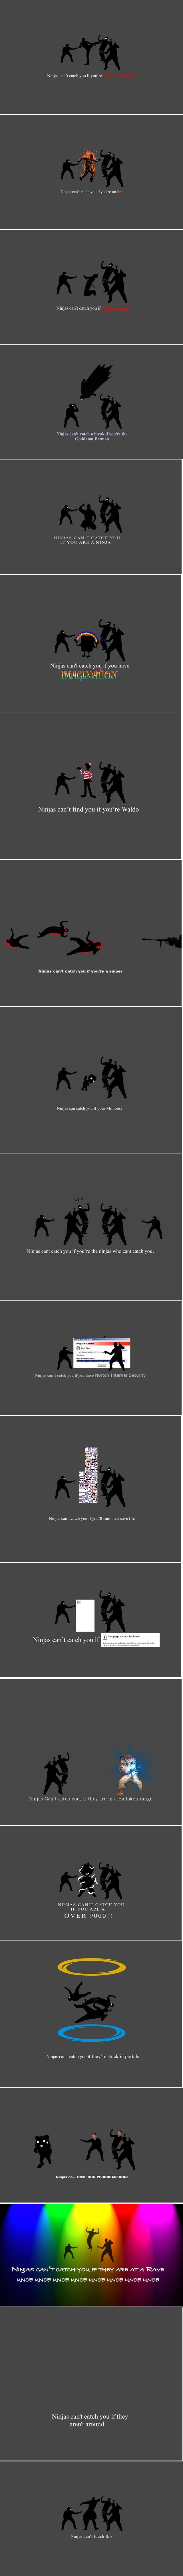 110419 - how to survive a ninja attack